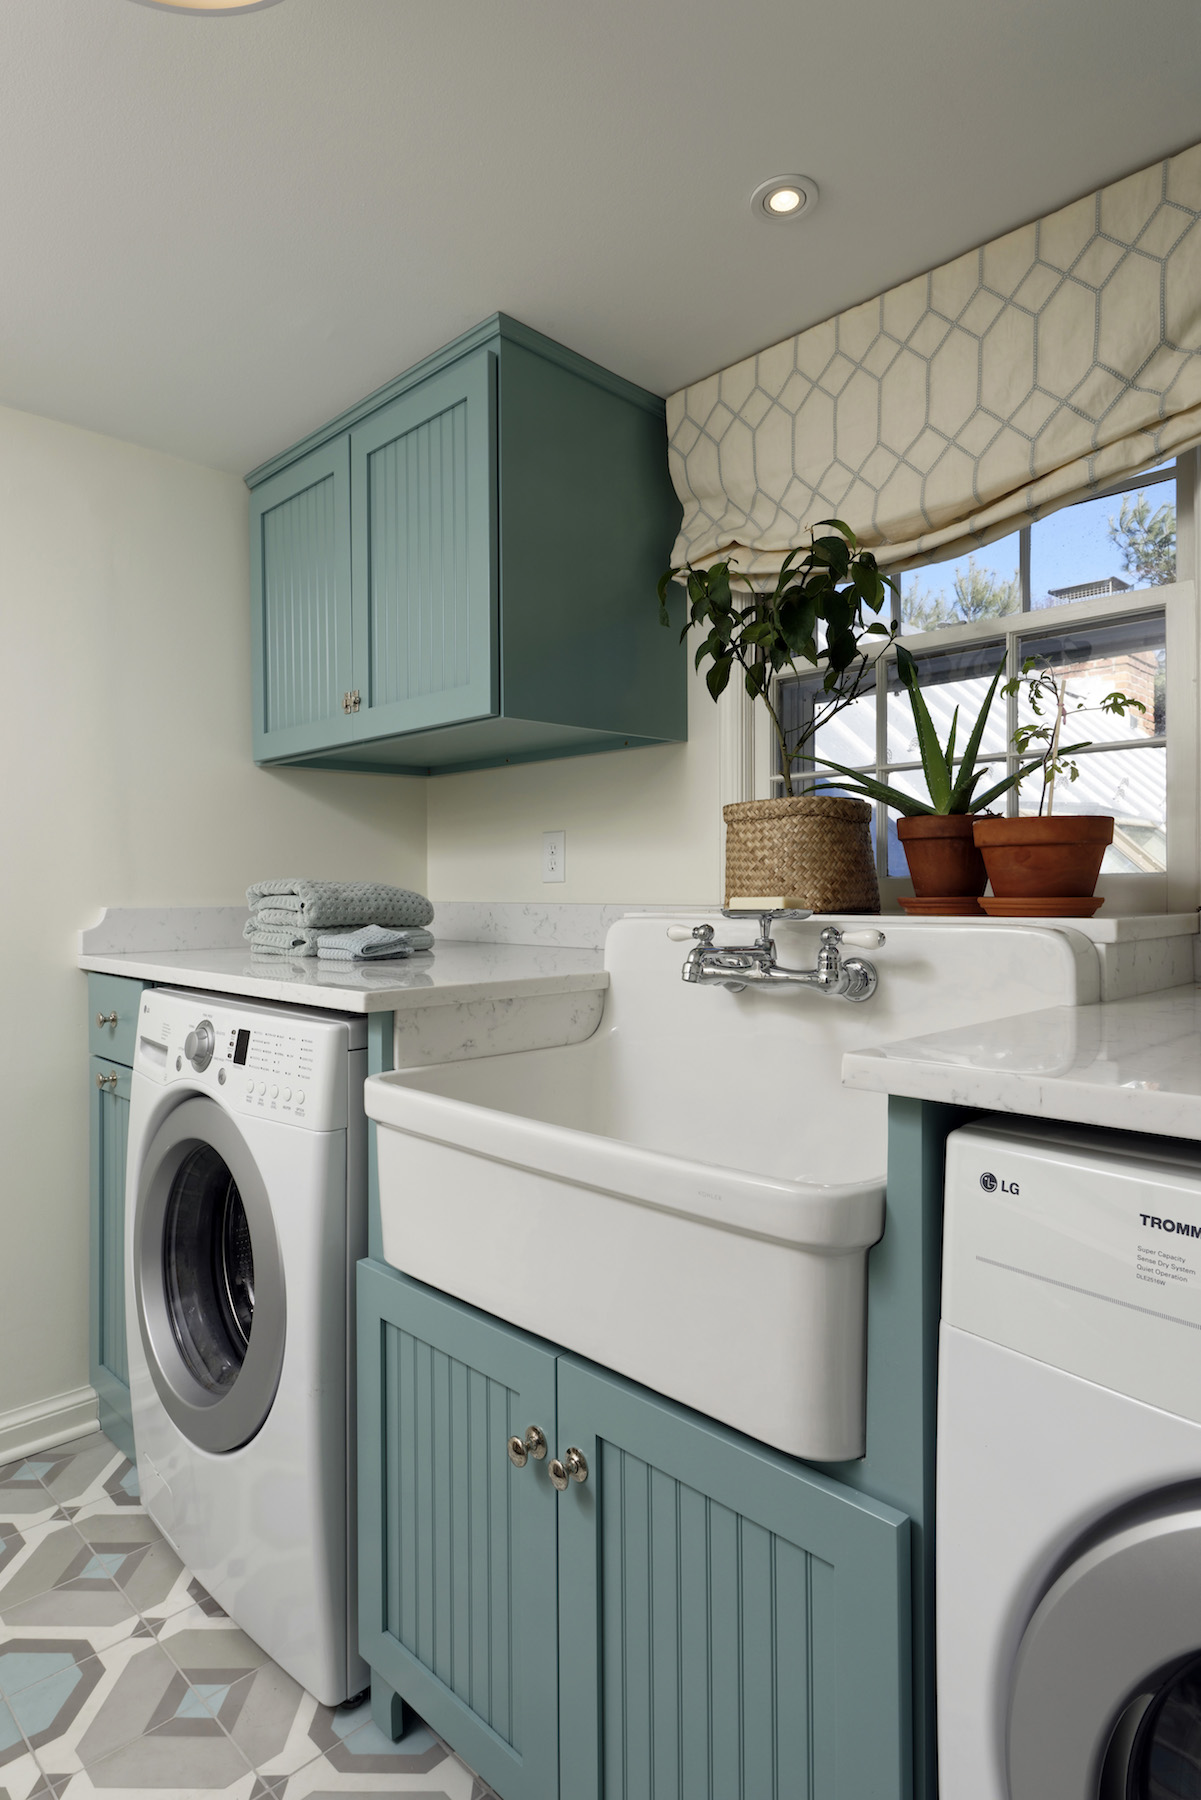 Clever Organizing Ideas to Steal From This Incredible ... on Laundry Room Organization Ideas  id=69215